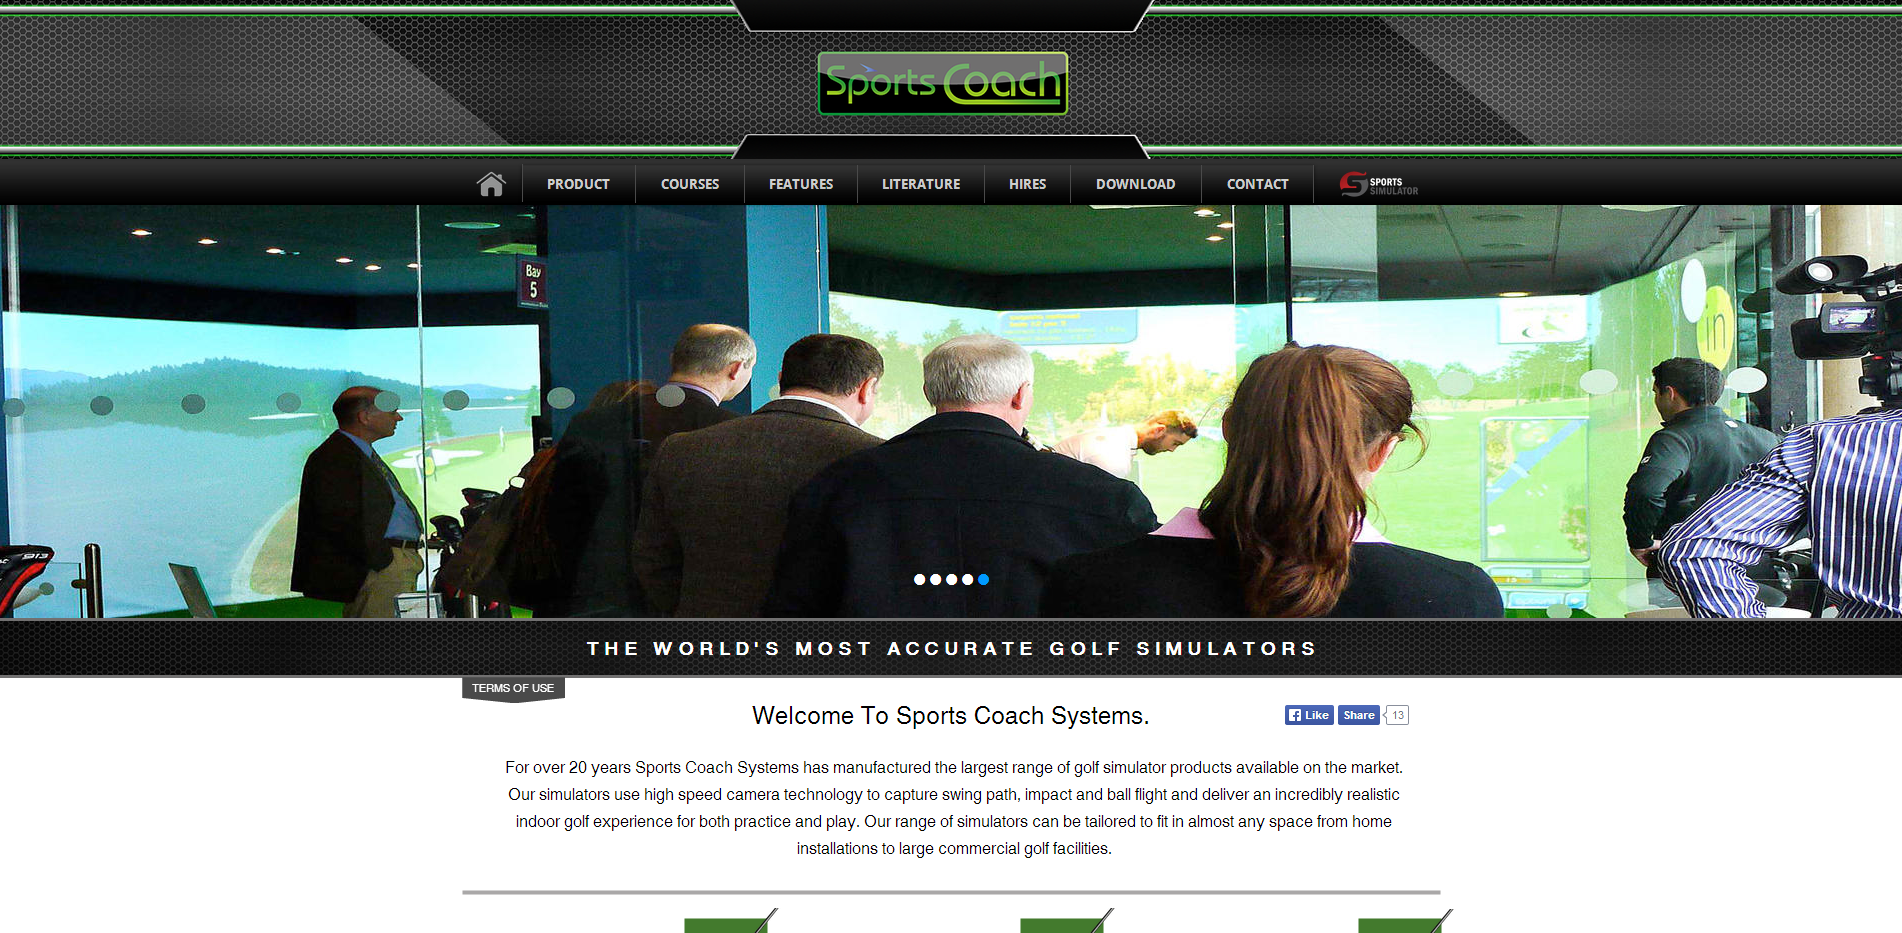 Sports Coach Systems